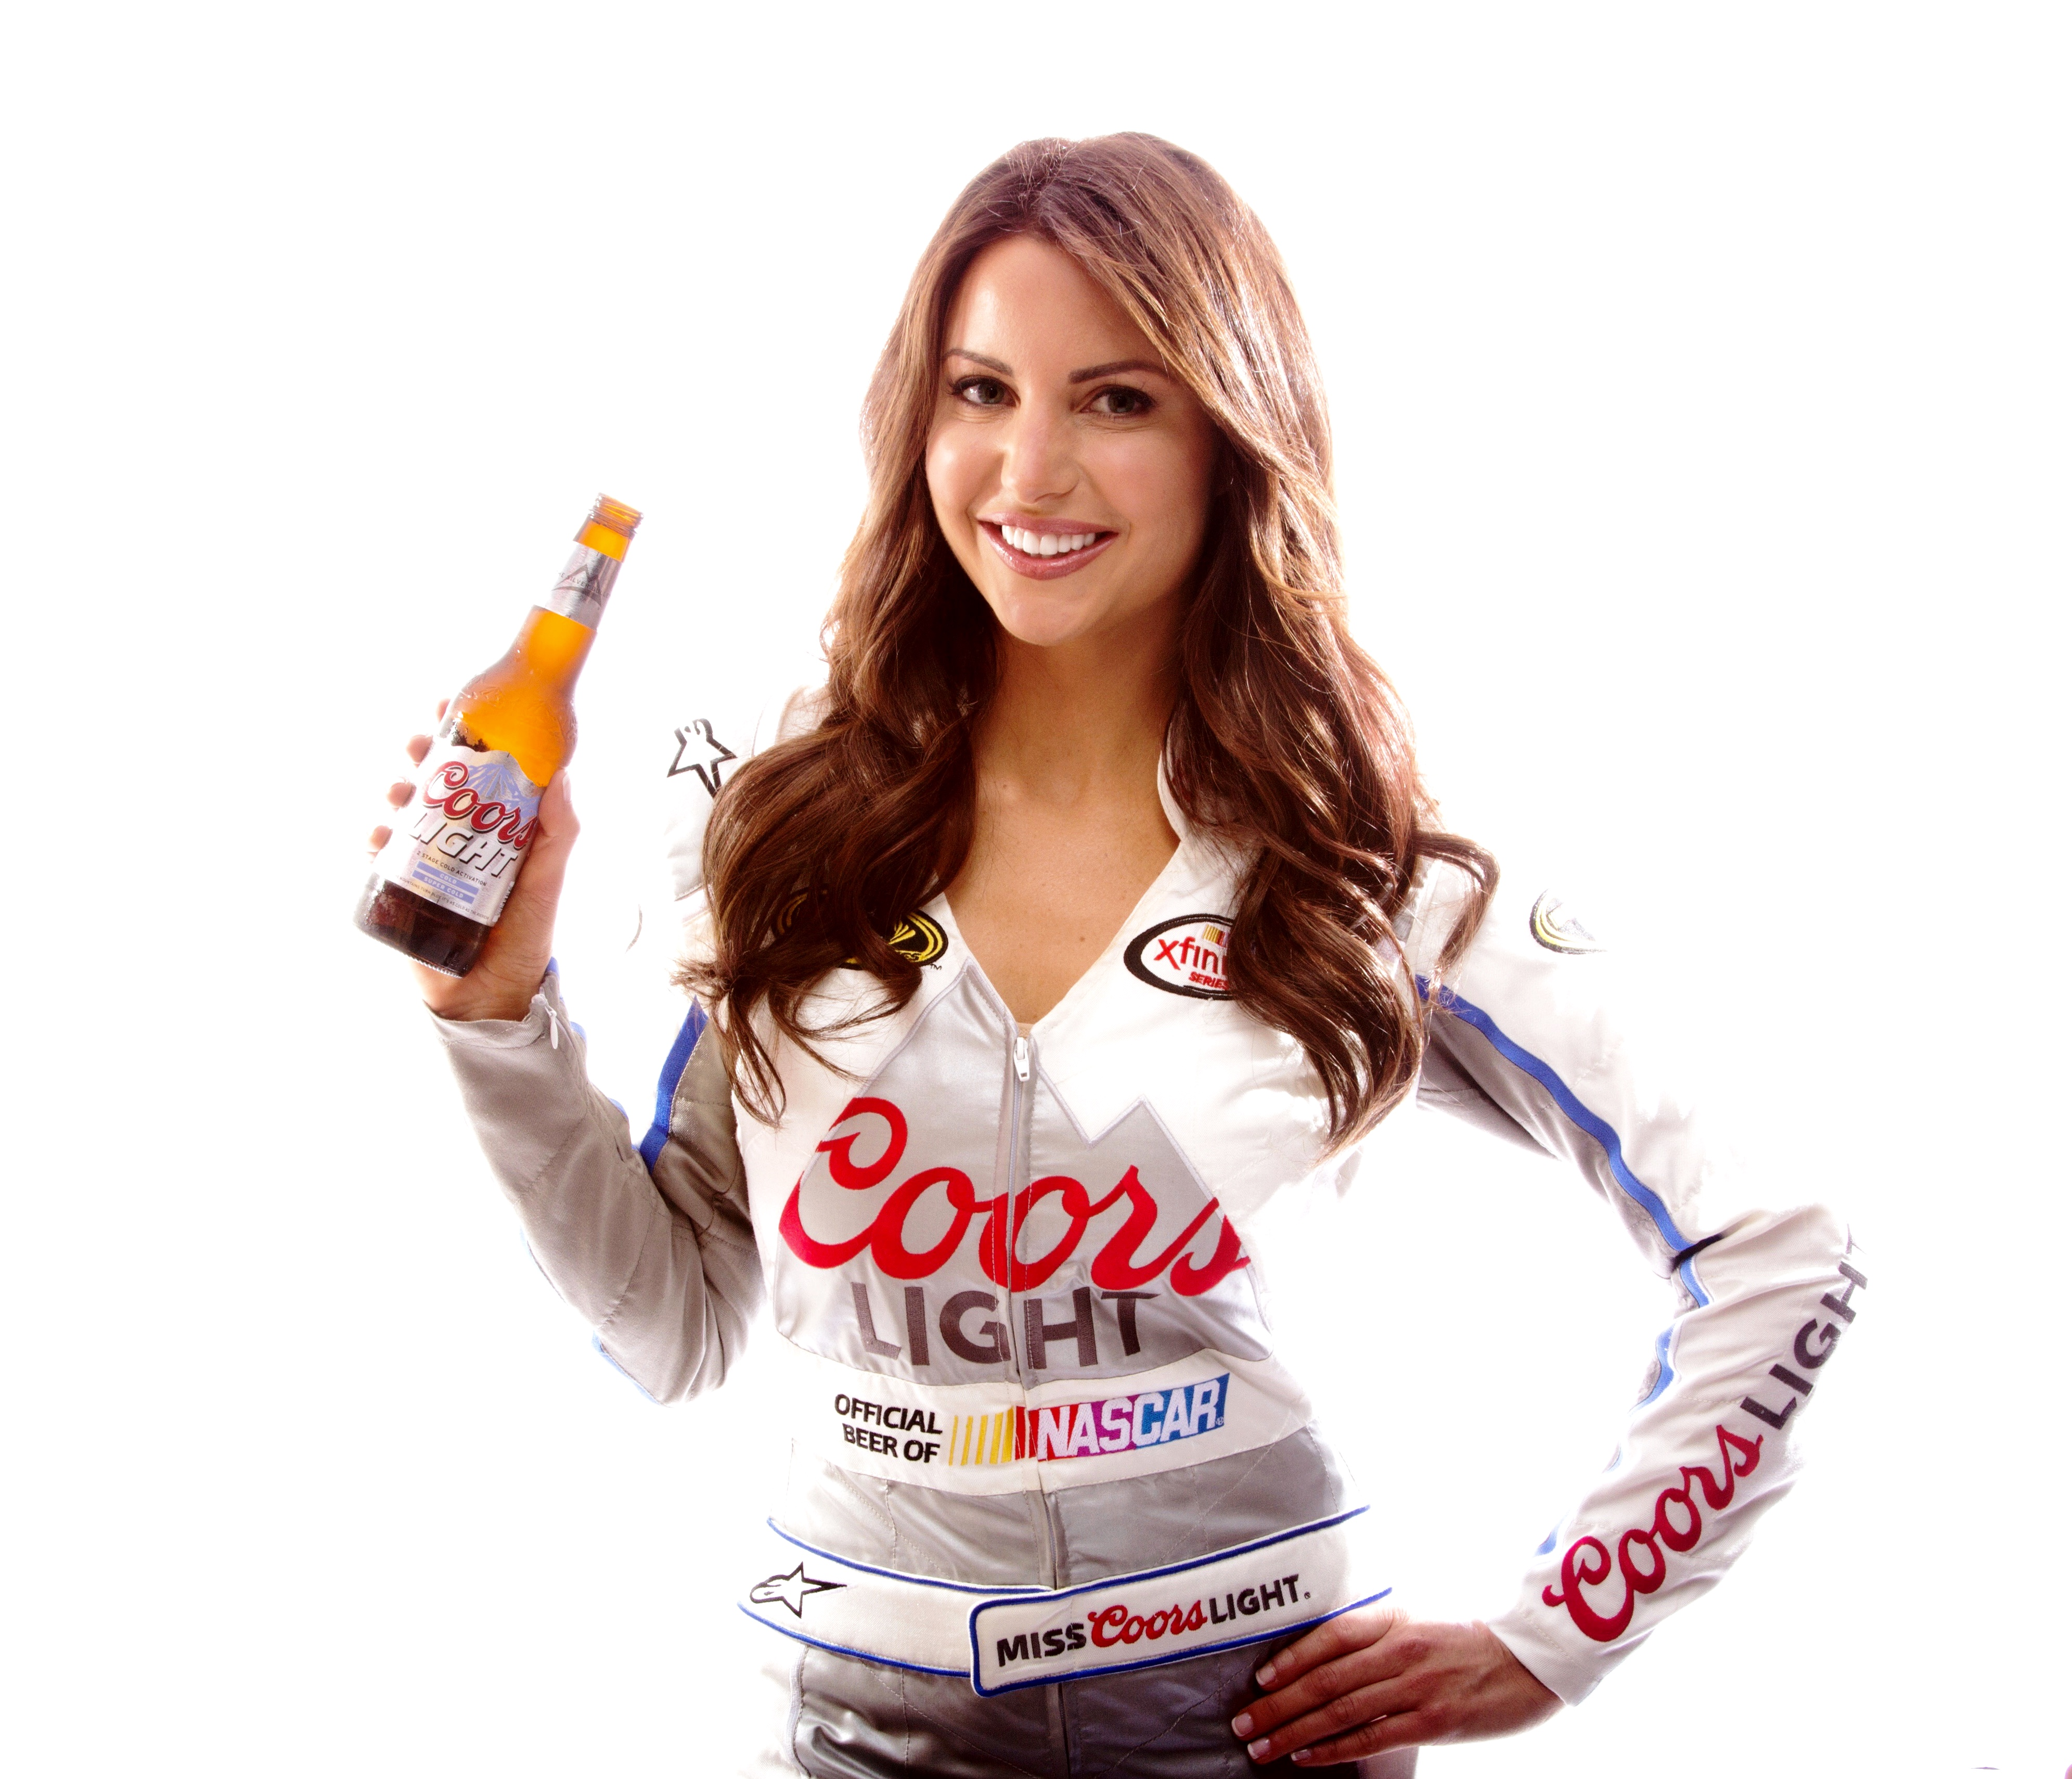 Welcome Amanda Mertiz The New Miss Coors Light Nascar Pole Position Sur.ly for wordpress sur.ly plugin for wordpress is free of charge. miss coors light nascar pole position